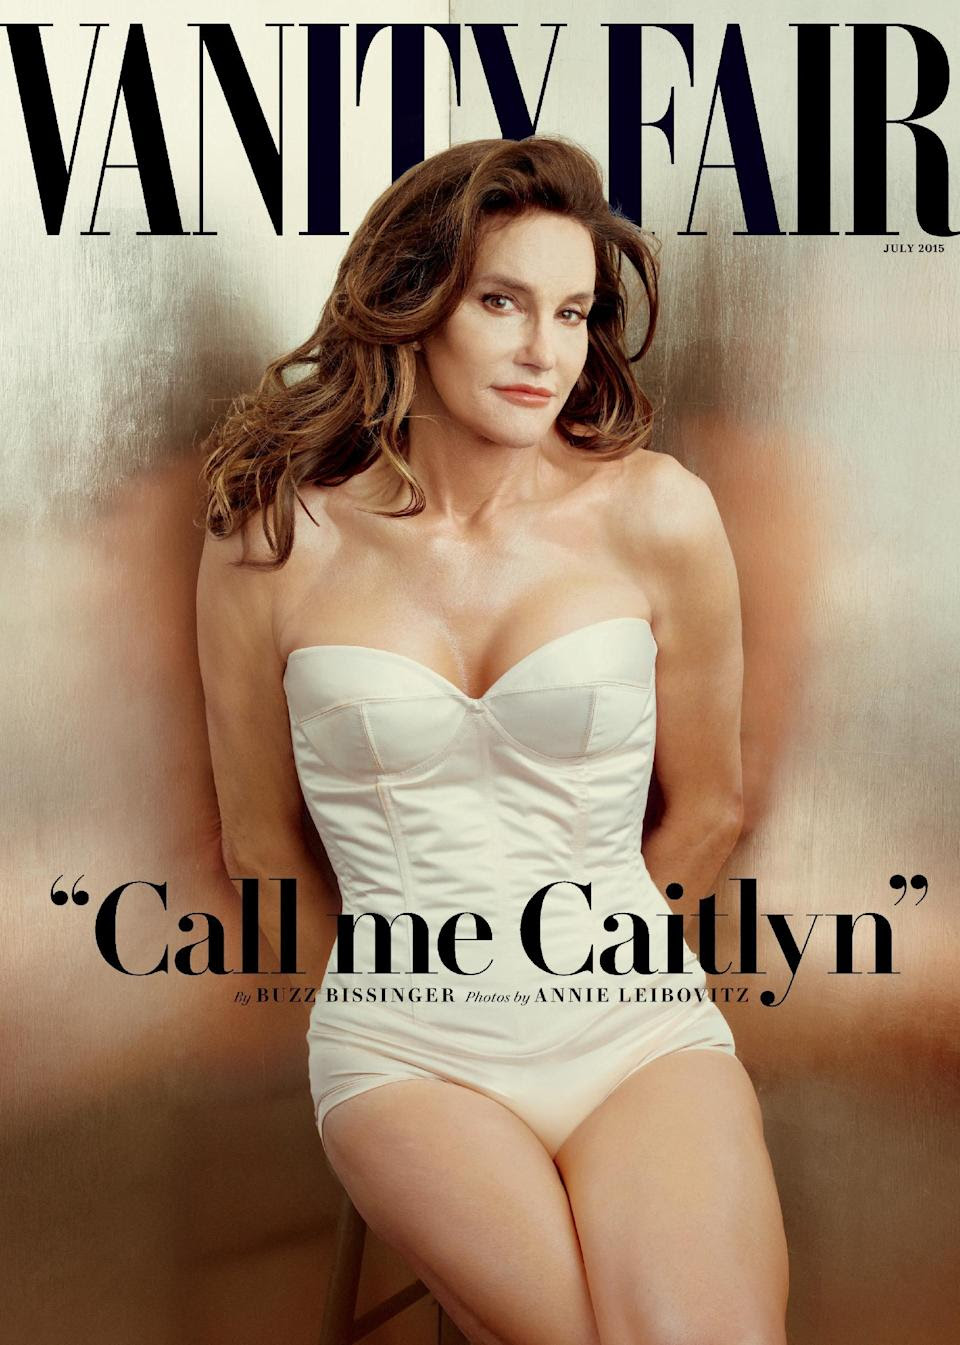 This file photo taken by Annie Leibovitz exclusively for Vanity Fair shows the cover of the magazine's July 2015 issue featuring Bruce Jenner...